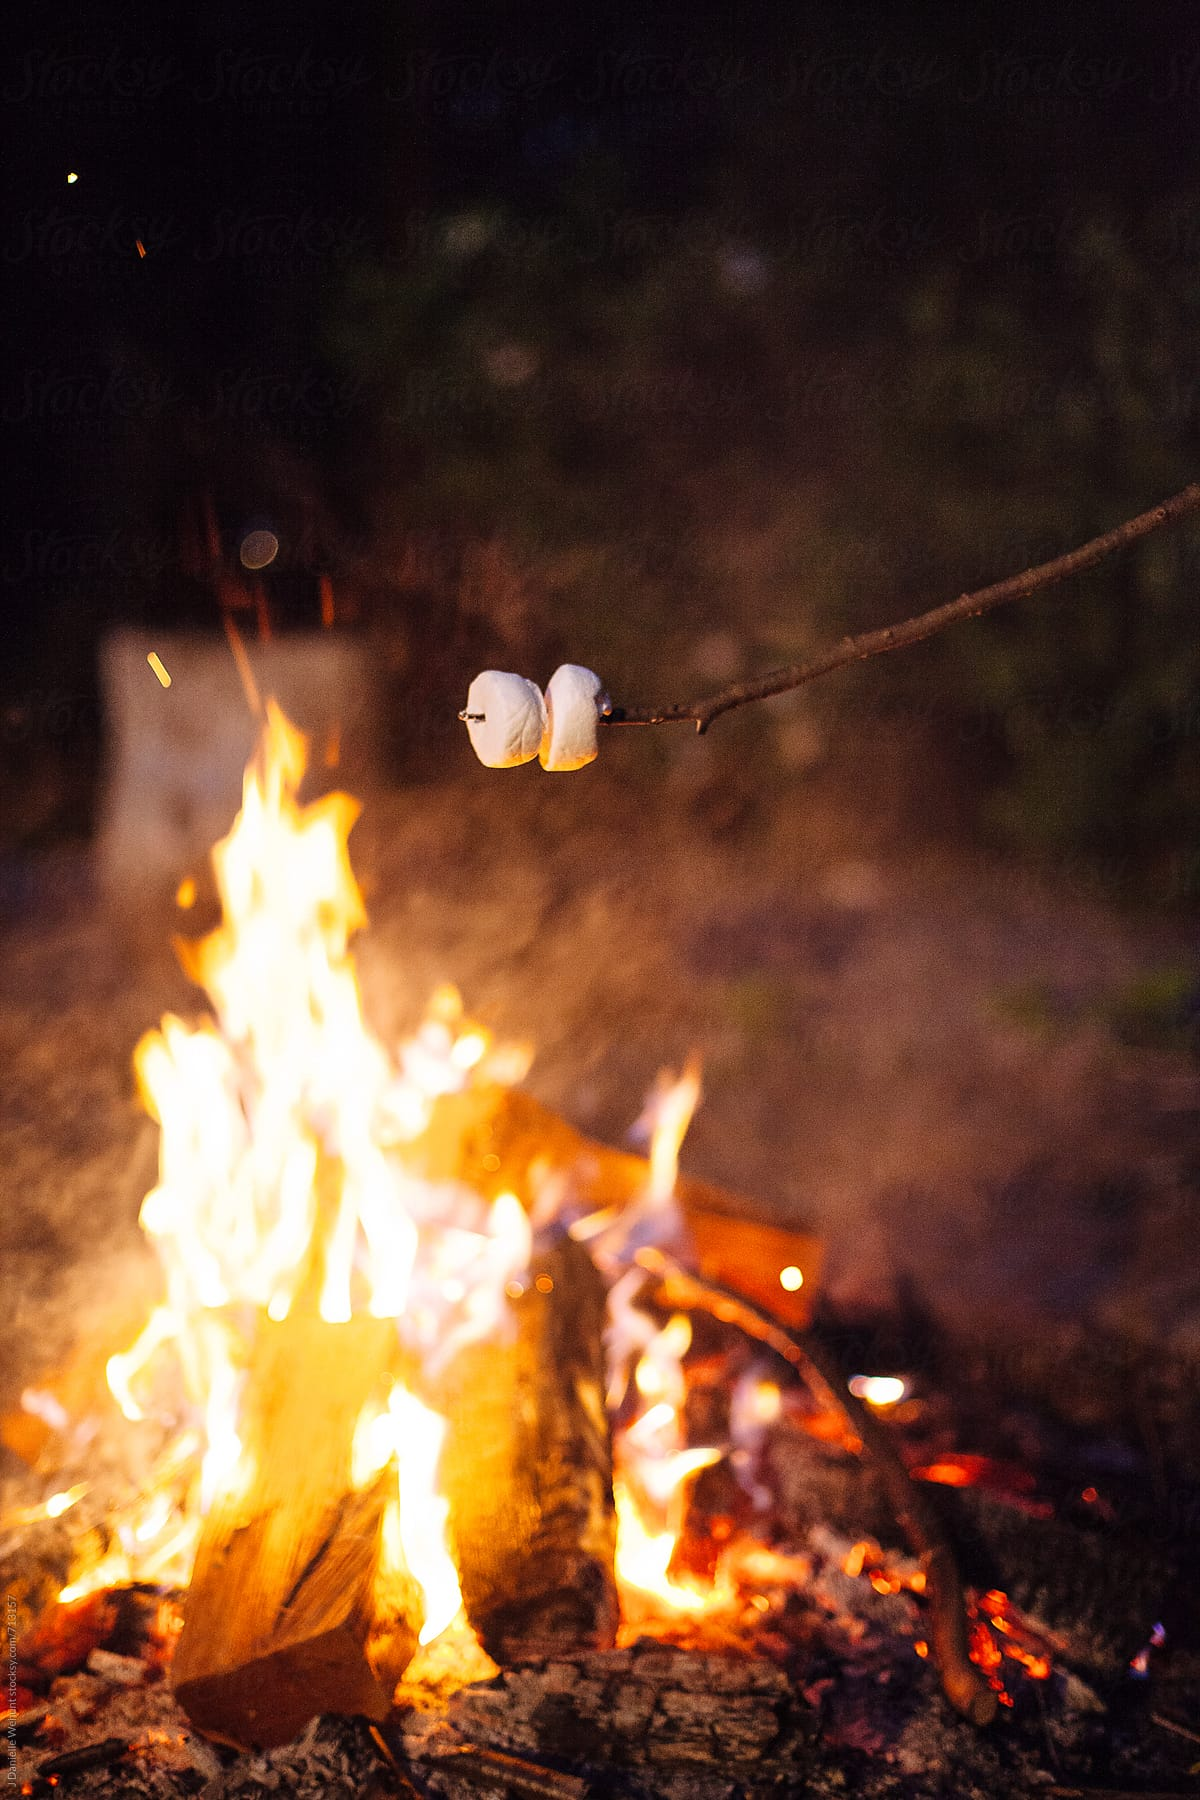 marshmallows roasting over an open fire stocksy united